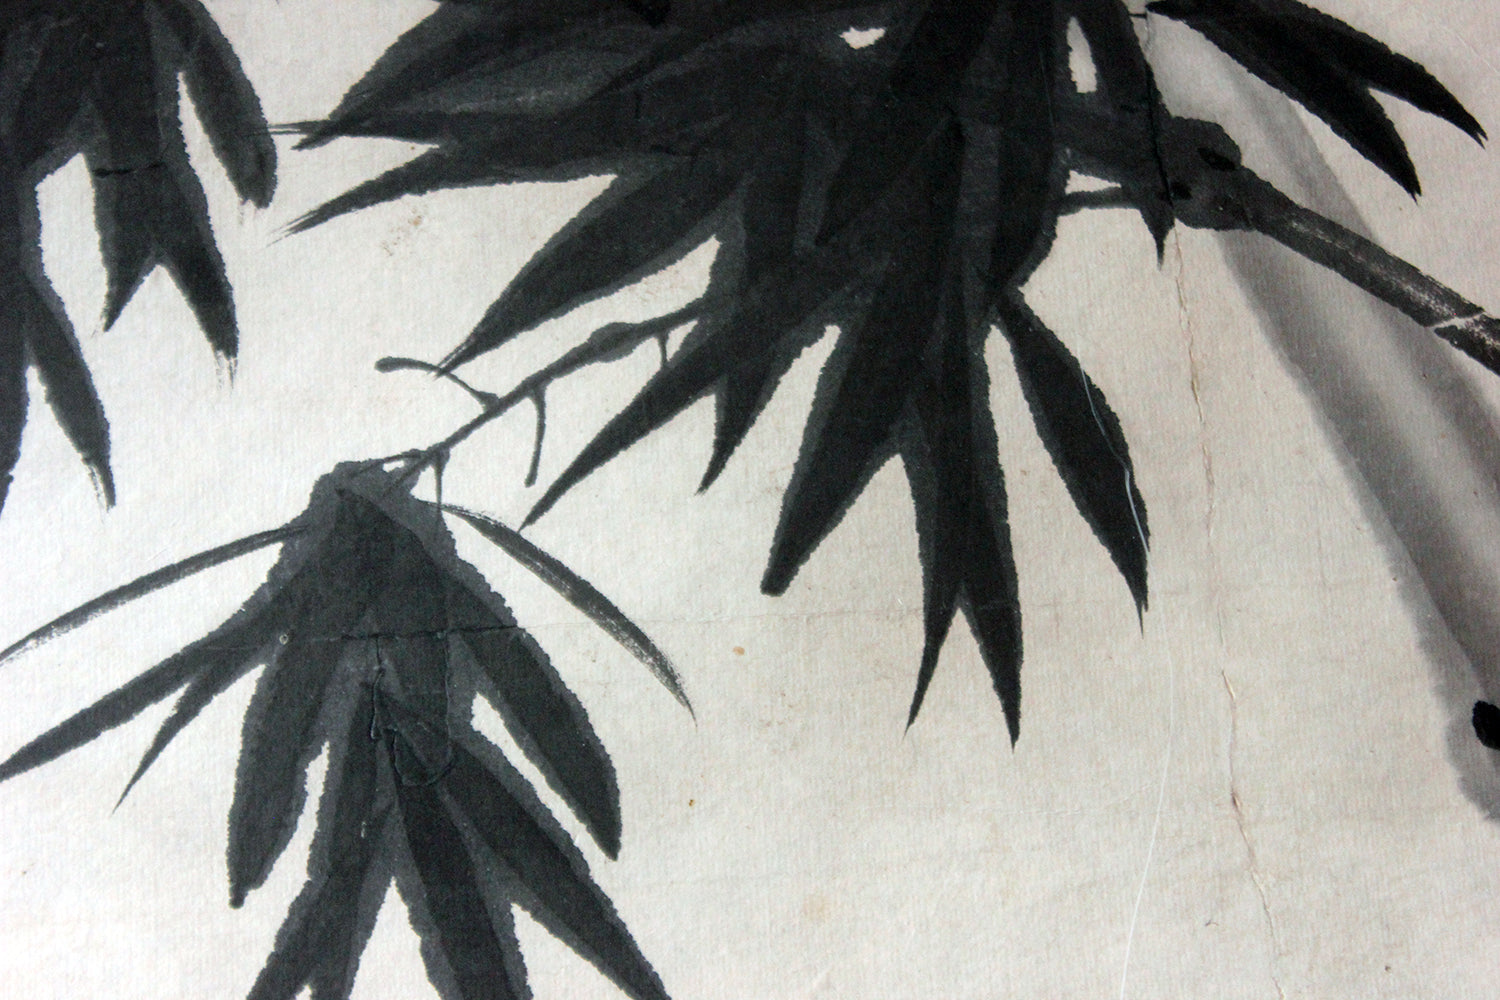 After 董其昌 Dong Qichang; A Very Large Chinese Ink Painting of Bamboo c.1920-40